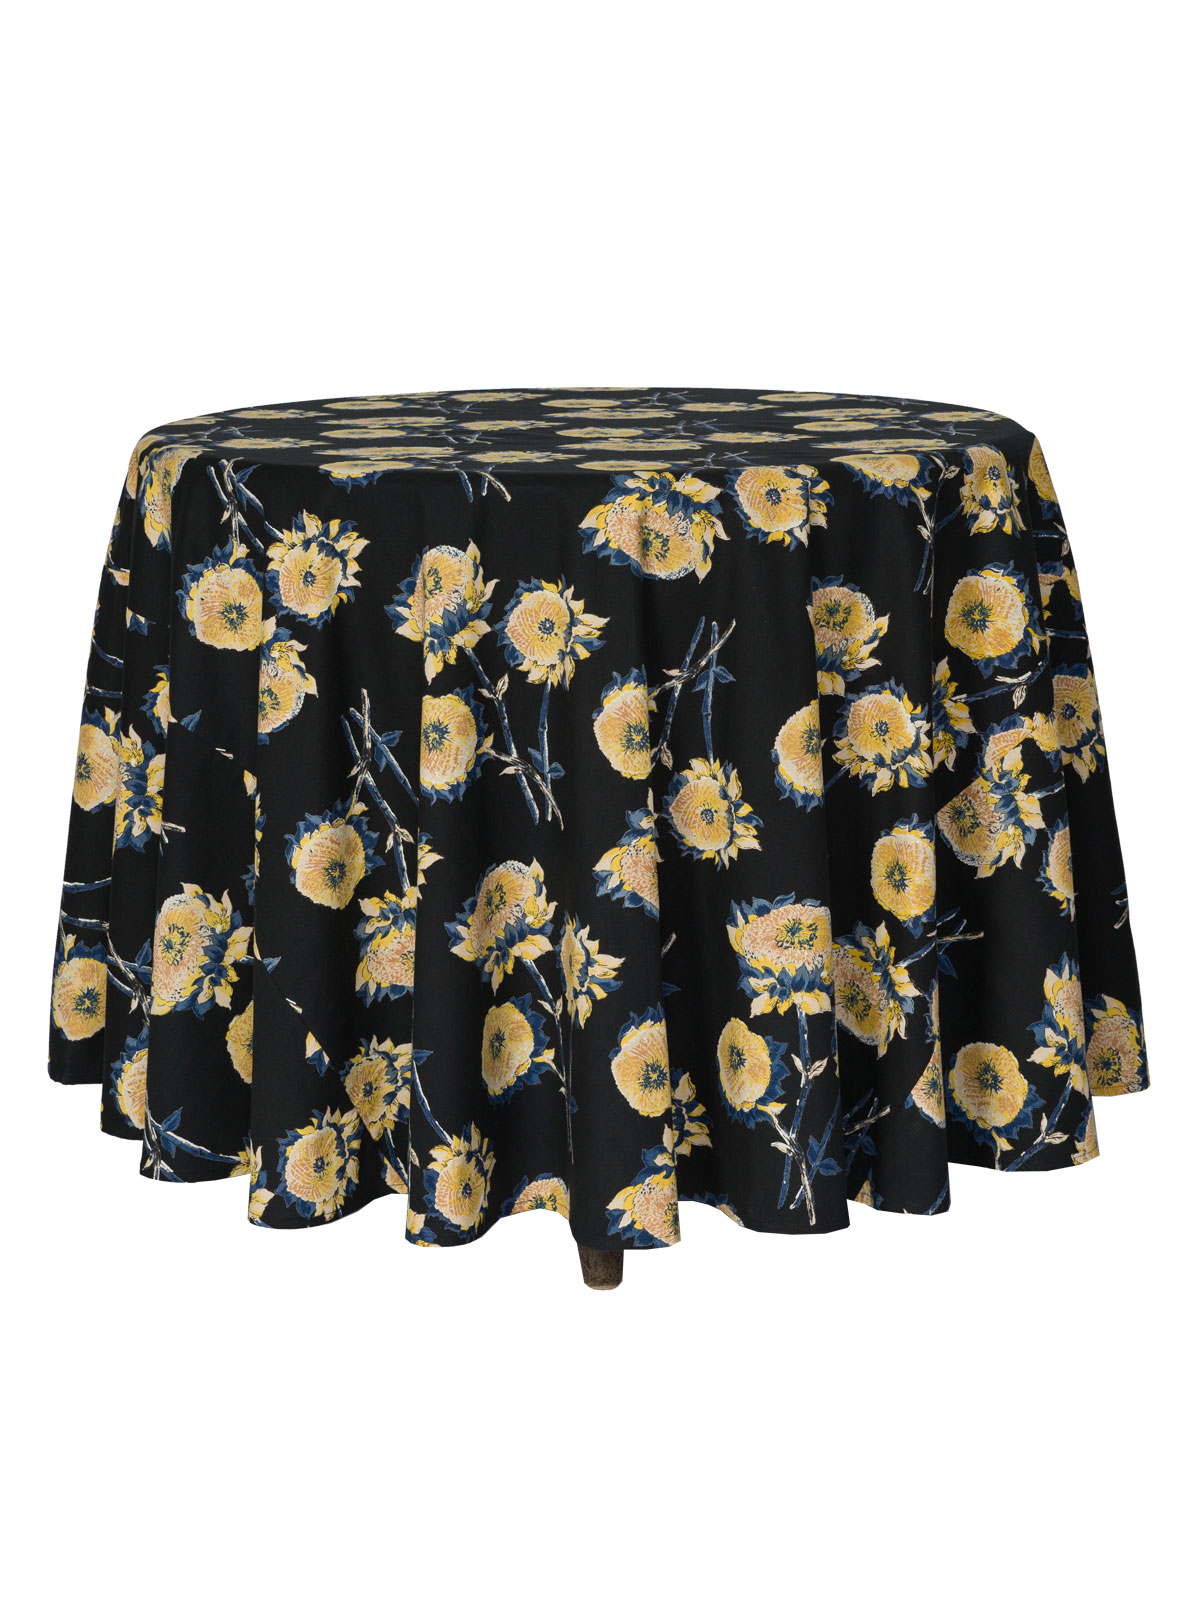 Sun Follower Round Tablecloth - Black